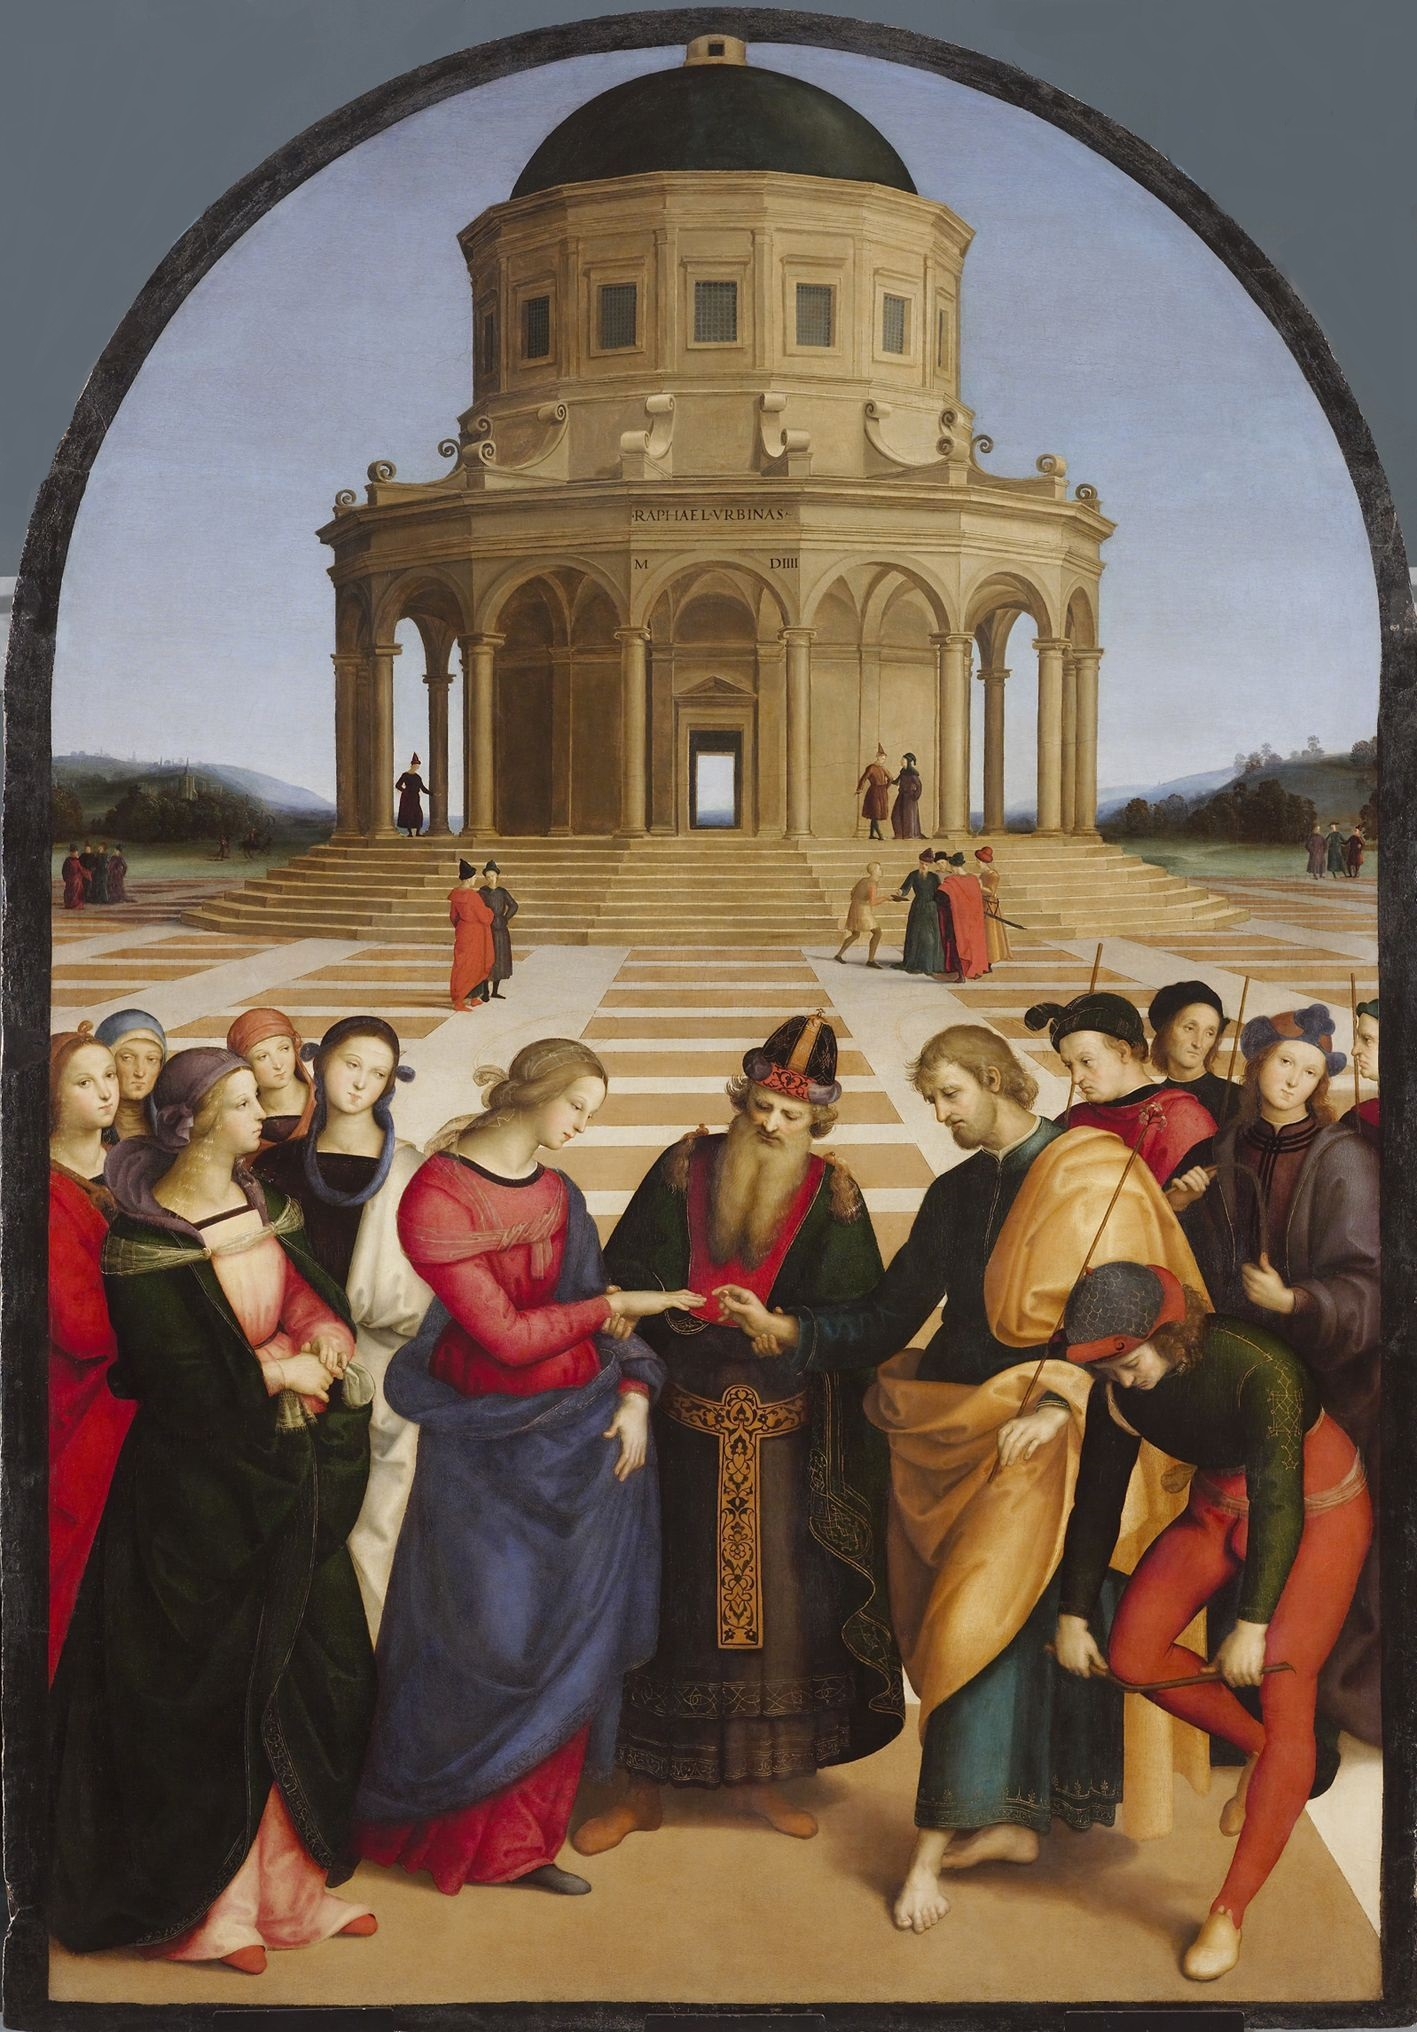 """the rebirth of painting during the italian renaissance The word """"renaissance"""" (rebirth) refers not only to the sudden and widespread flourishing of literature and the arts in fifteenth-century italy but also to the revival of antique culture as a vital force at that time."""